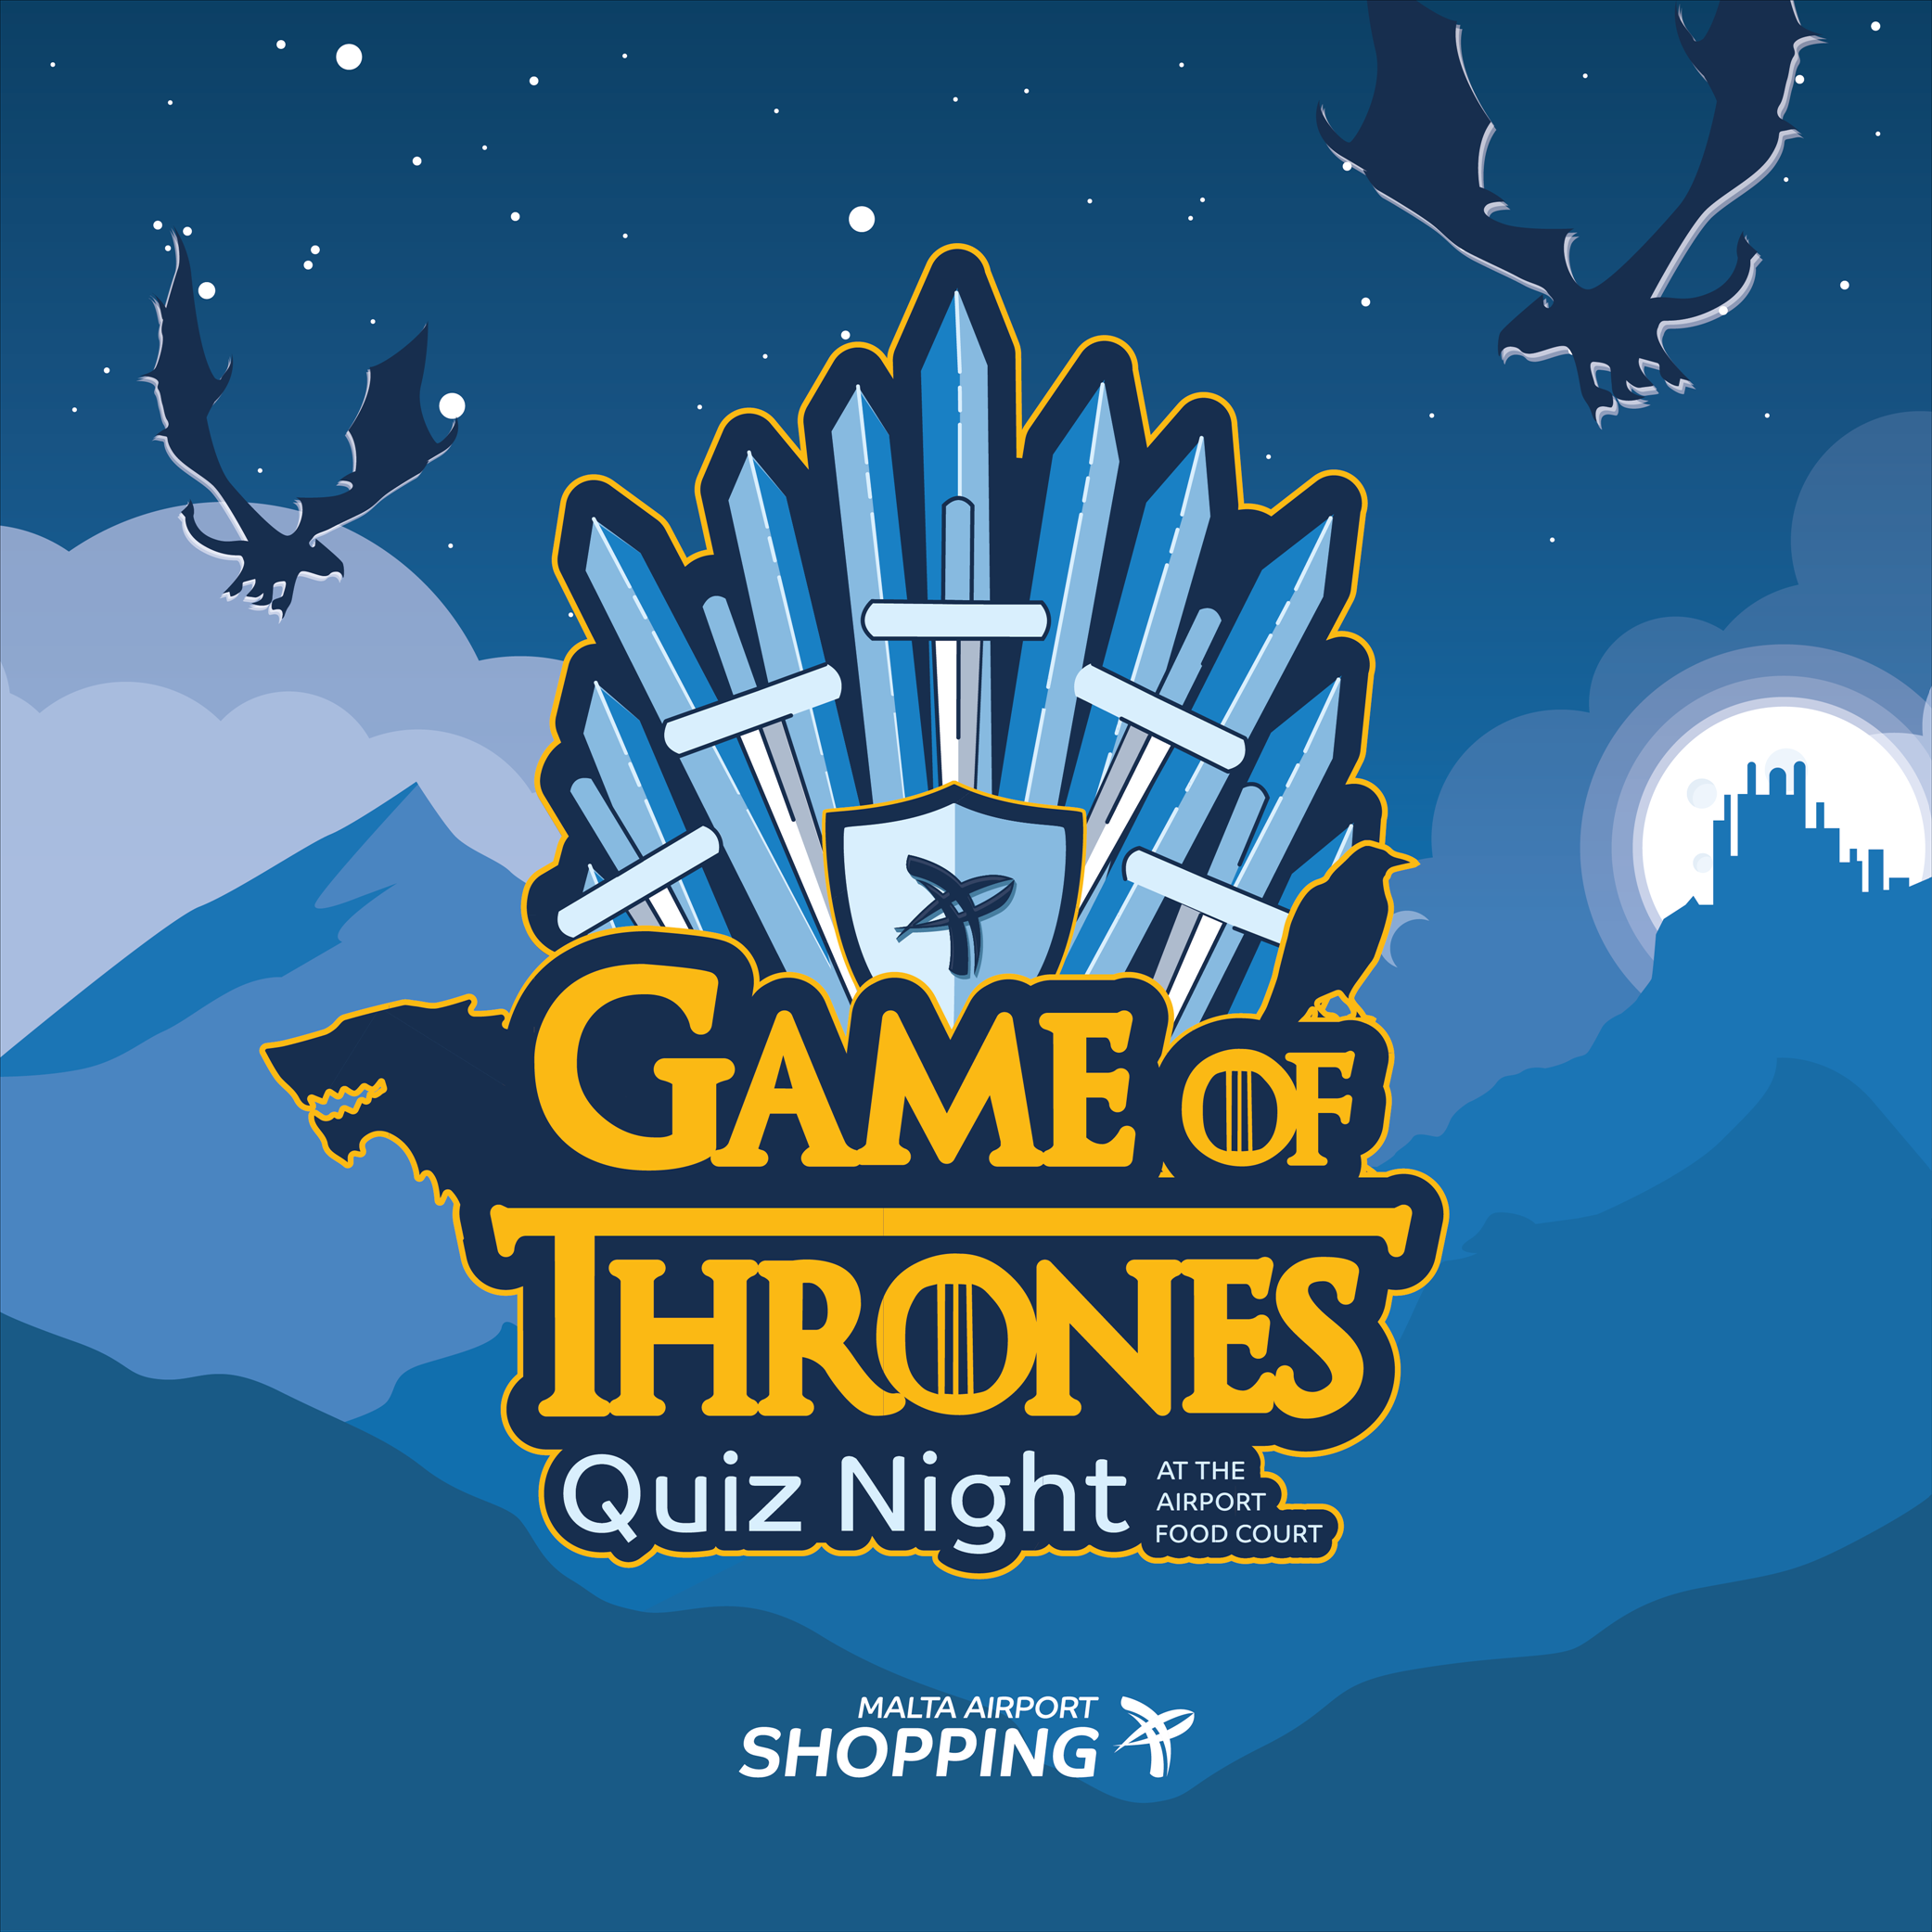 Game of Thrones Quiz Night at the Airport Food Court